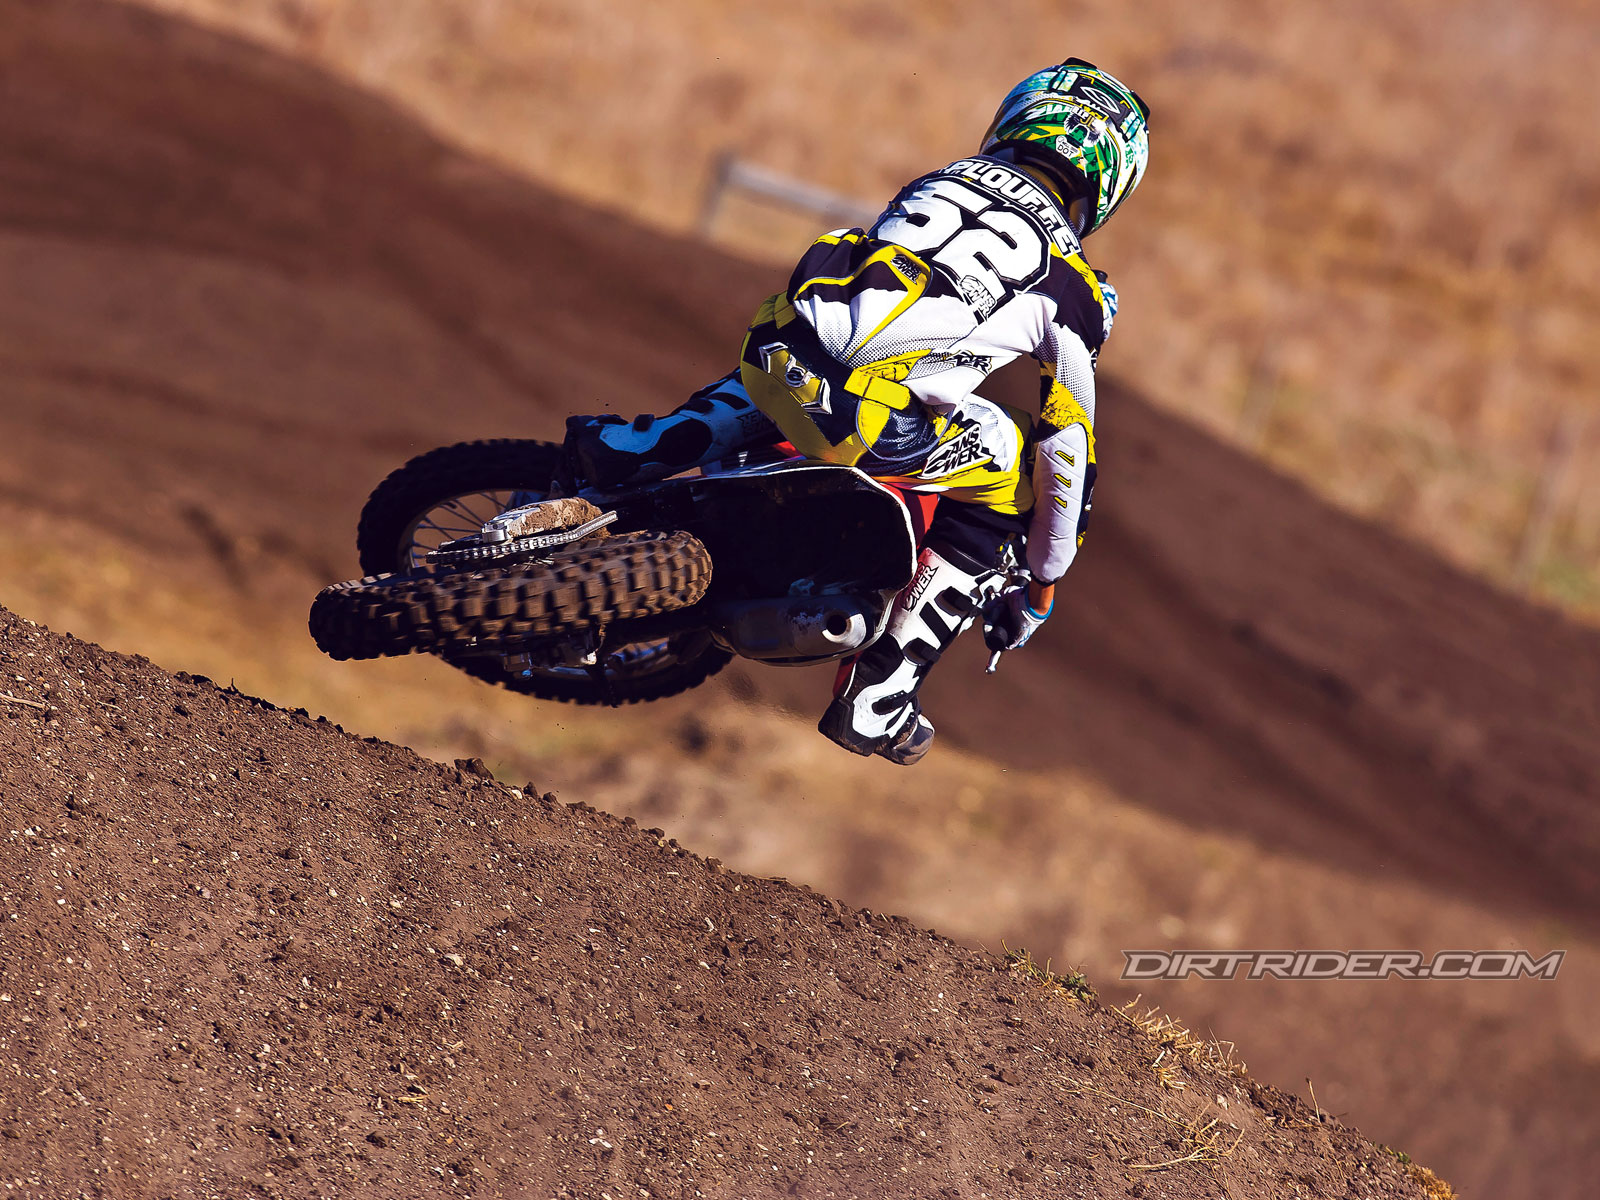 Dirt Bikes Hd Wallpapers: Click To See World: Dirt Bike Wallpapers